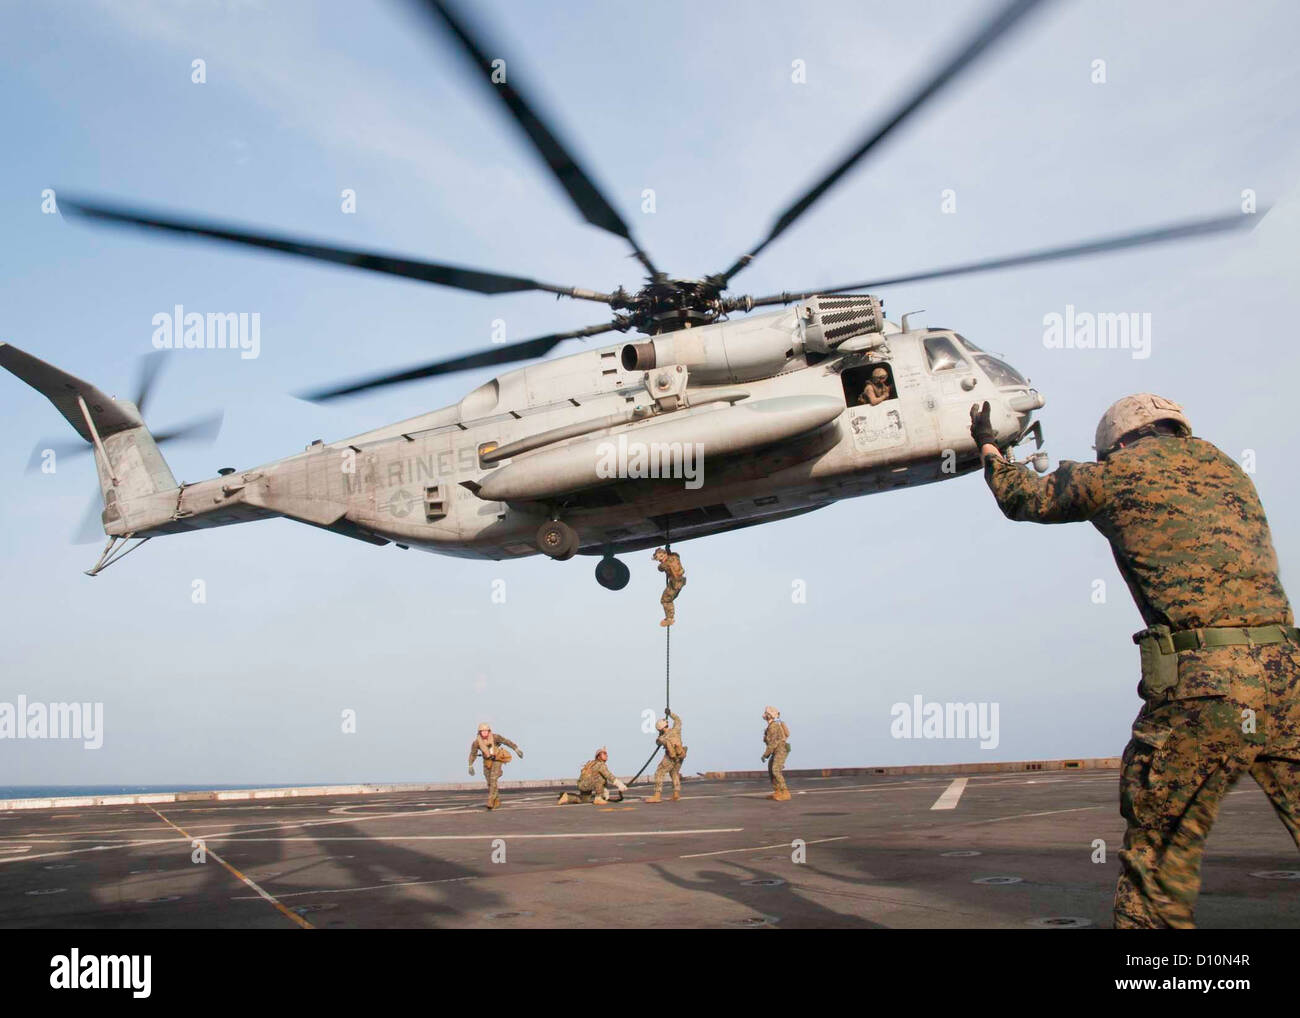 Marines assigned to the 24th Marine Expeditionary Unit (24th MEU) conduct fast-rope drills from a CH-53E Super Stallion - Stock Image